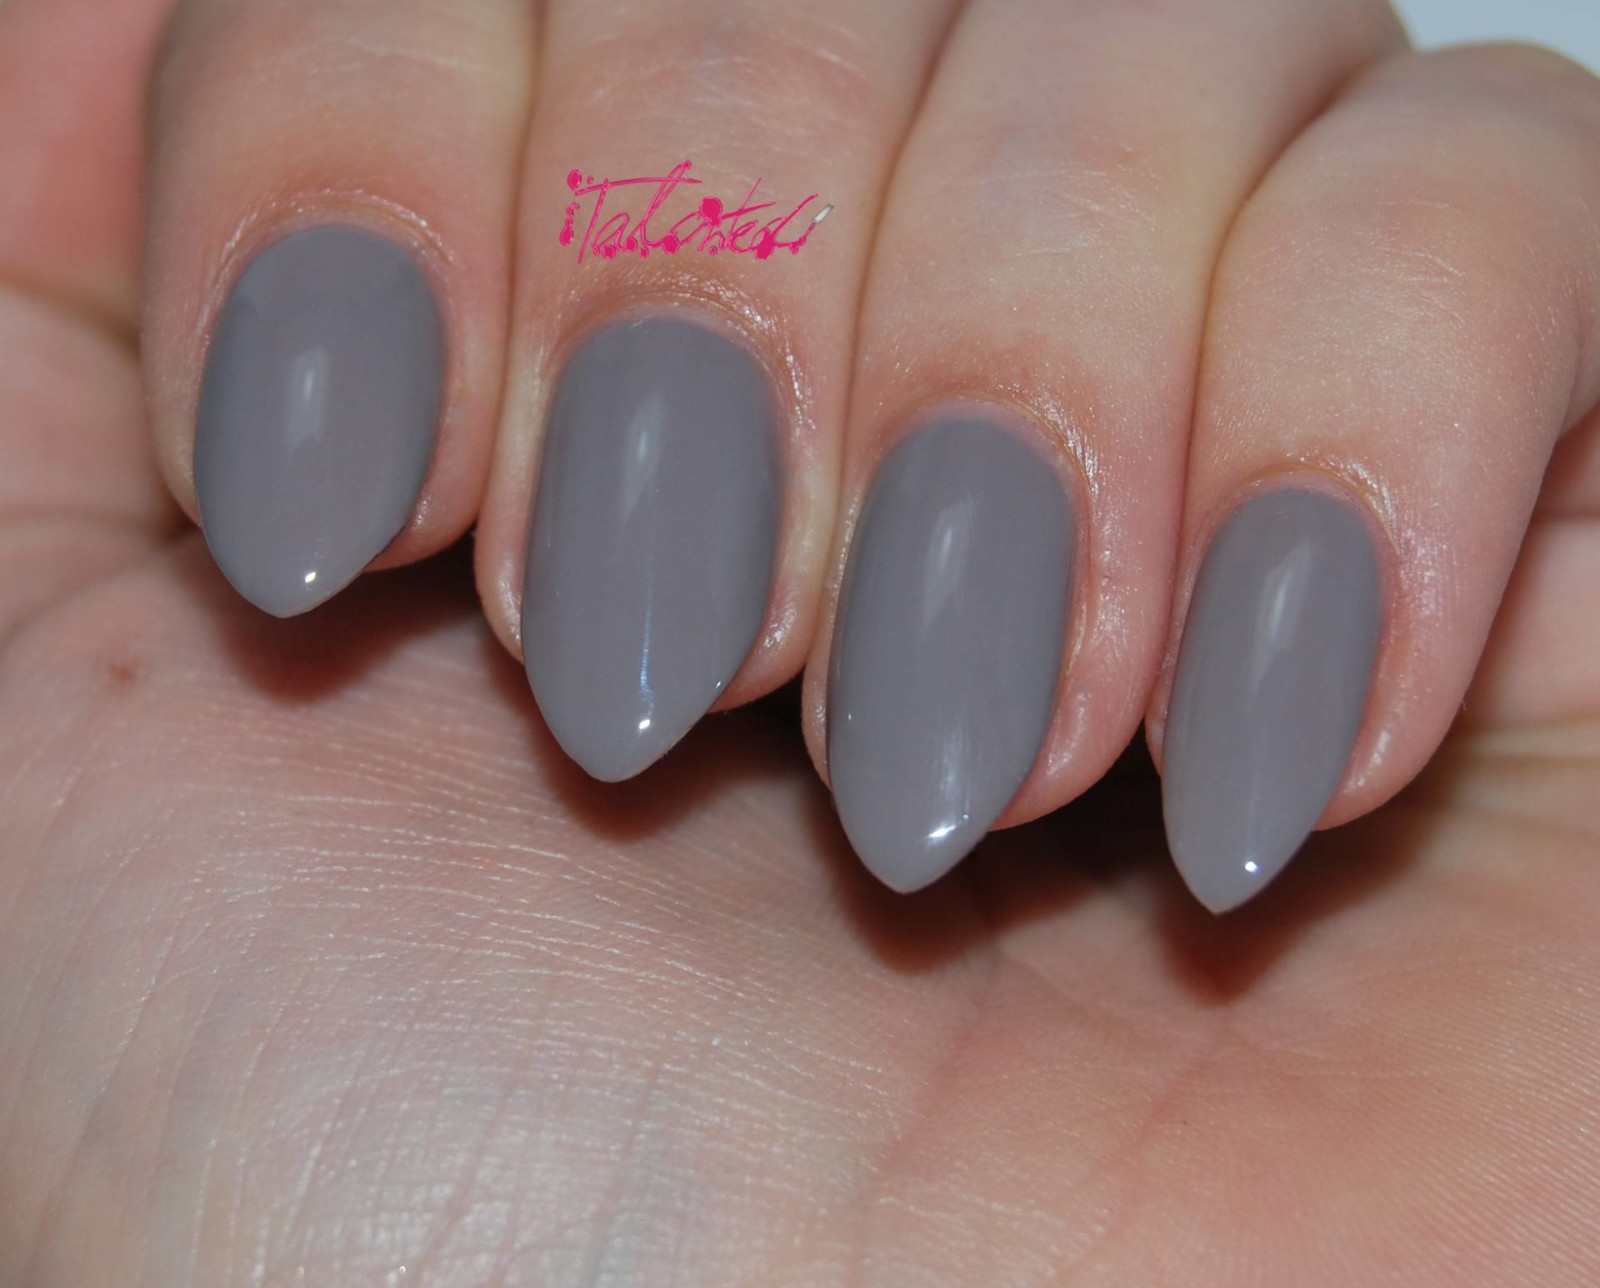 Essie Chinchilly Nail Varnish